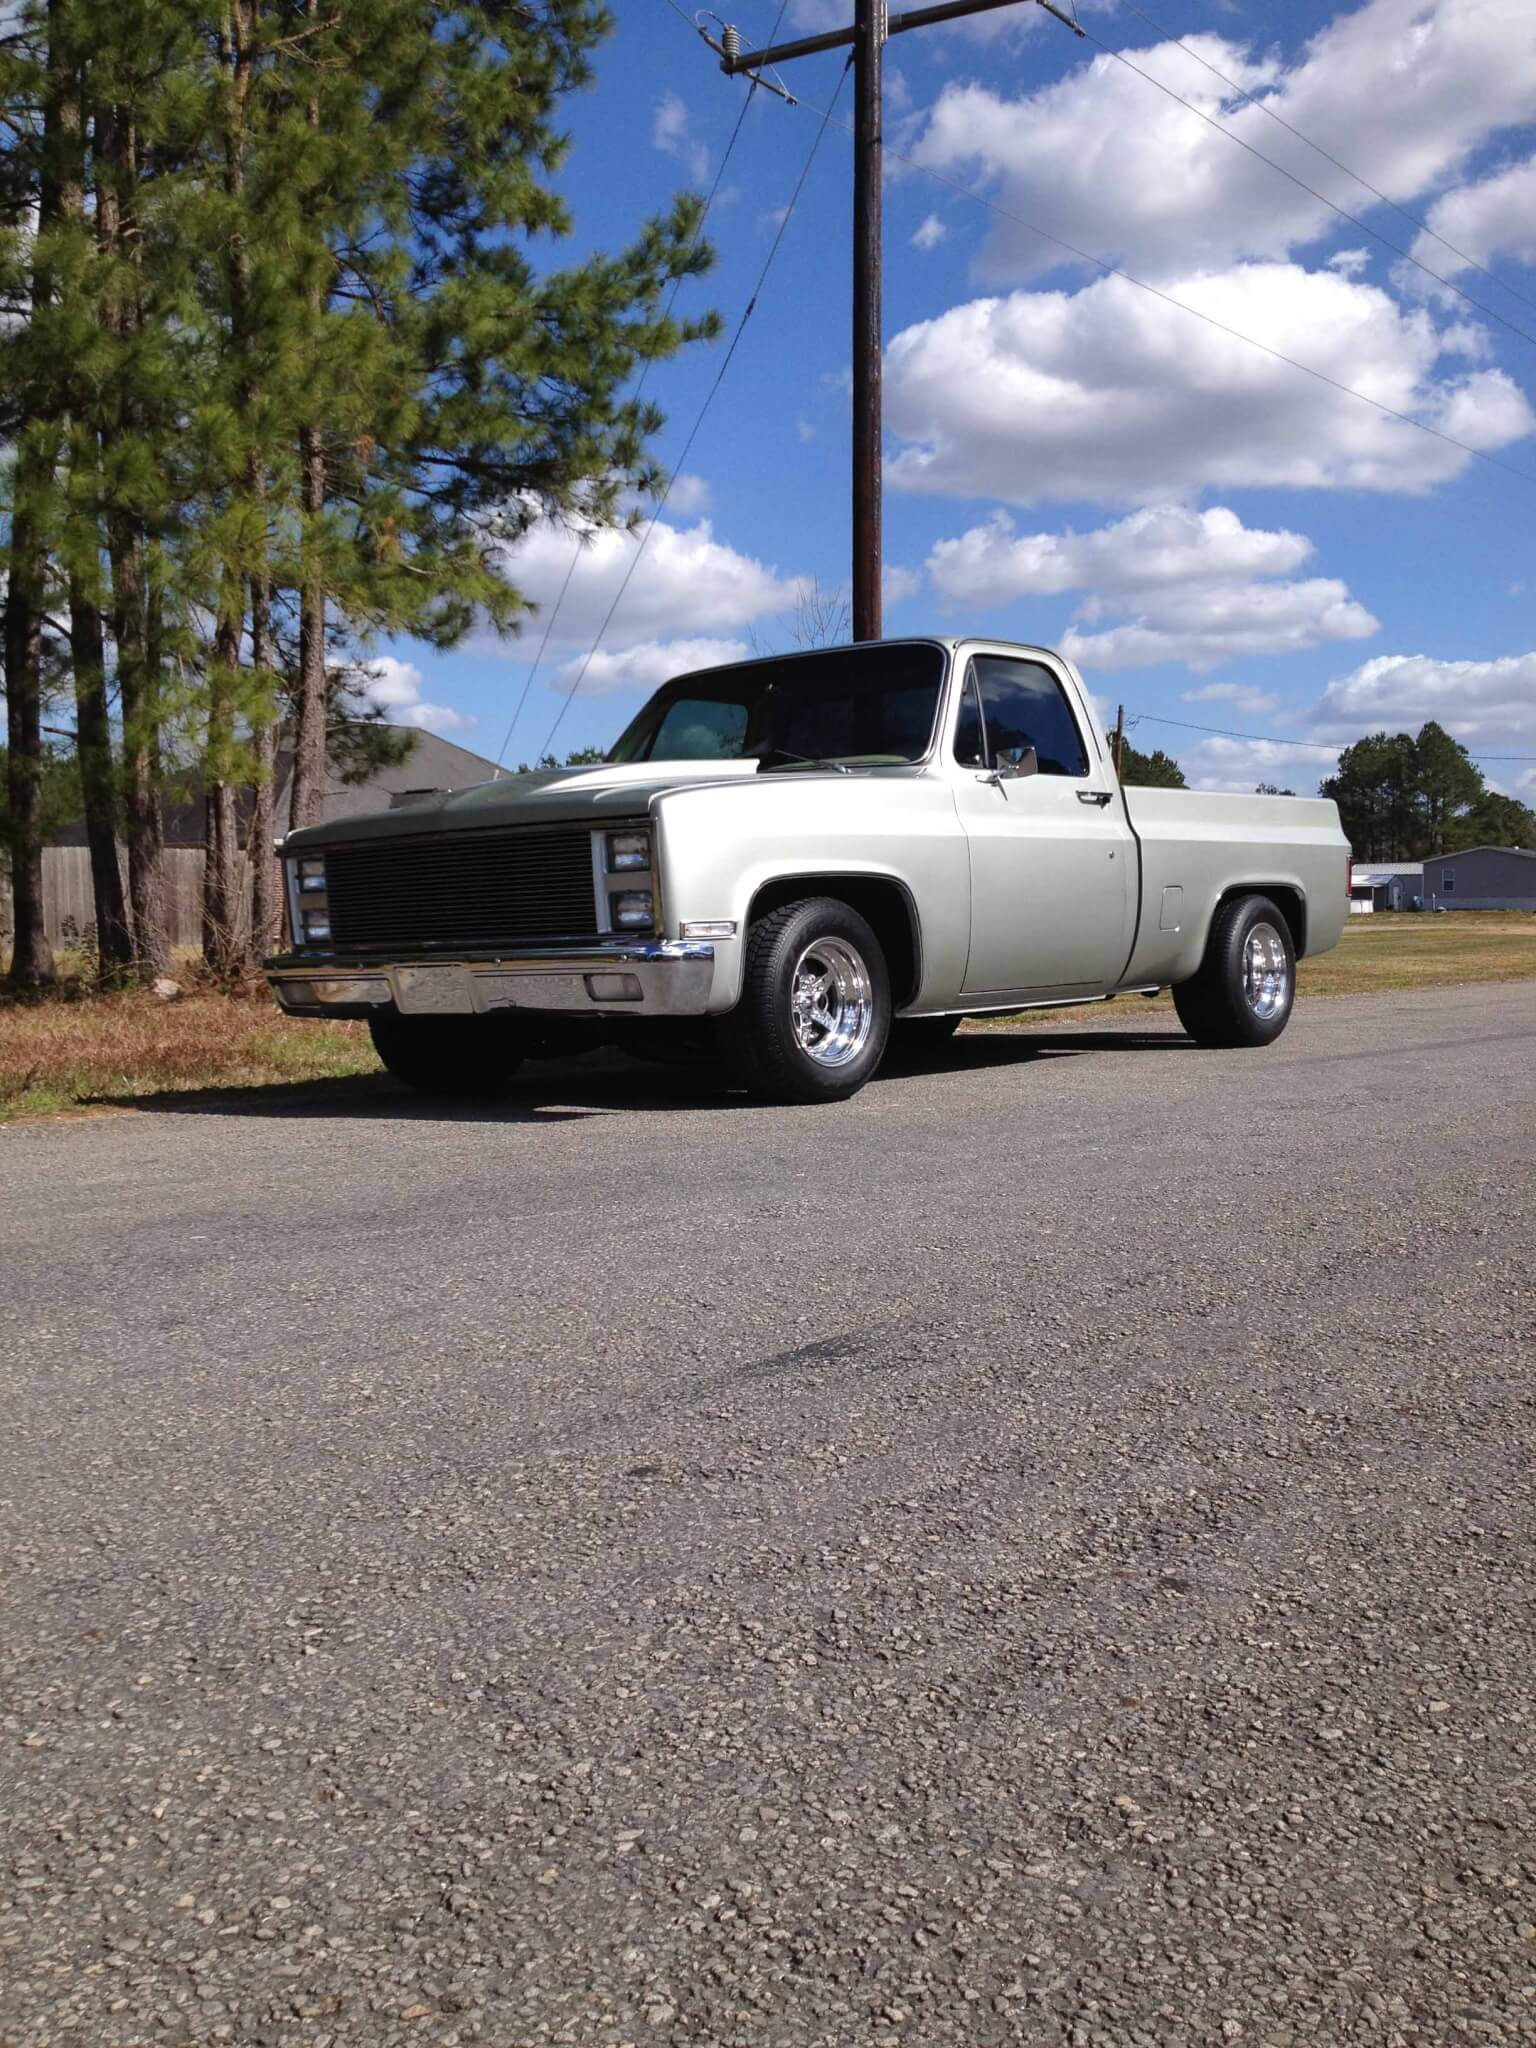 1982 gmc truck paint colors | 1982 GMC All Models Colors of